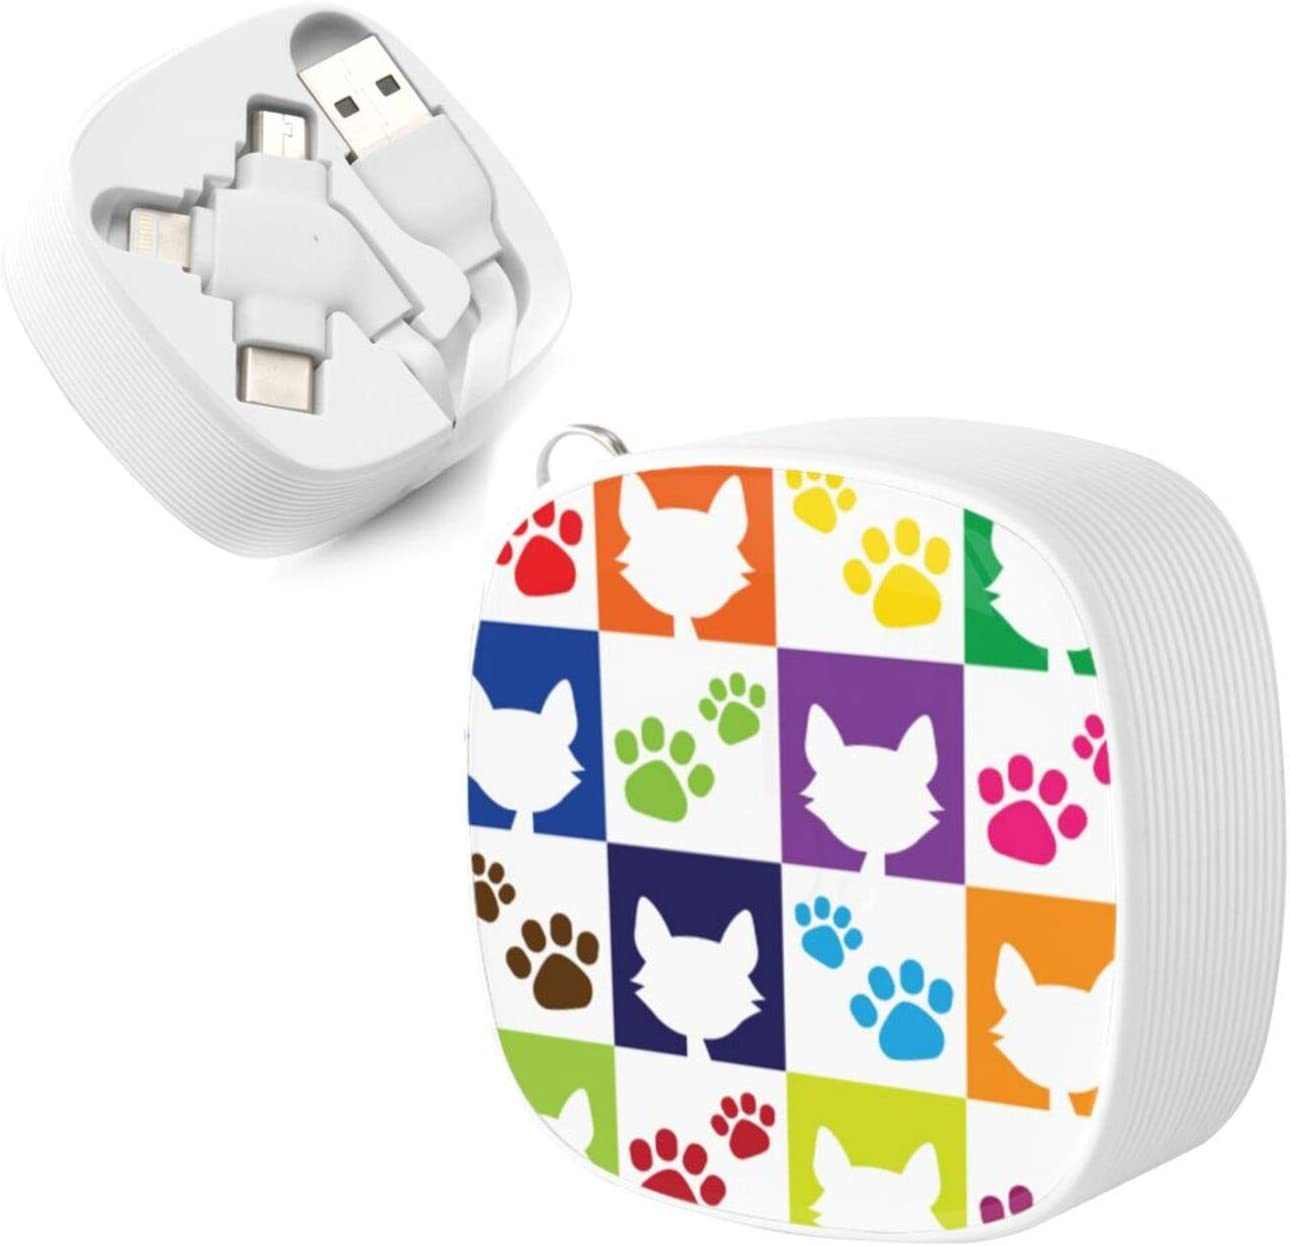 Funny Catsthe Square Three-in-One USB Cable is A Universal Interface Charging Cable Suitable for Various Mobile Phones and Tablets